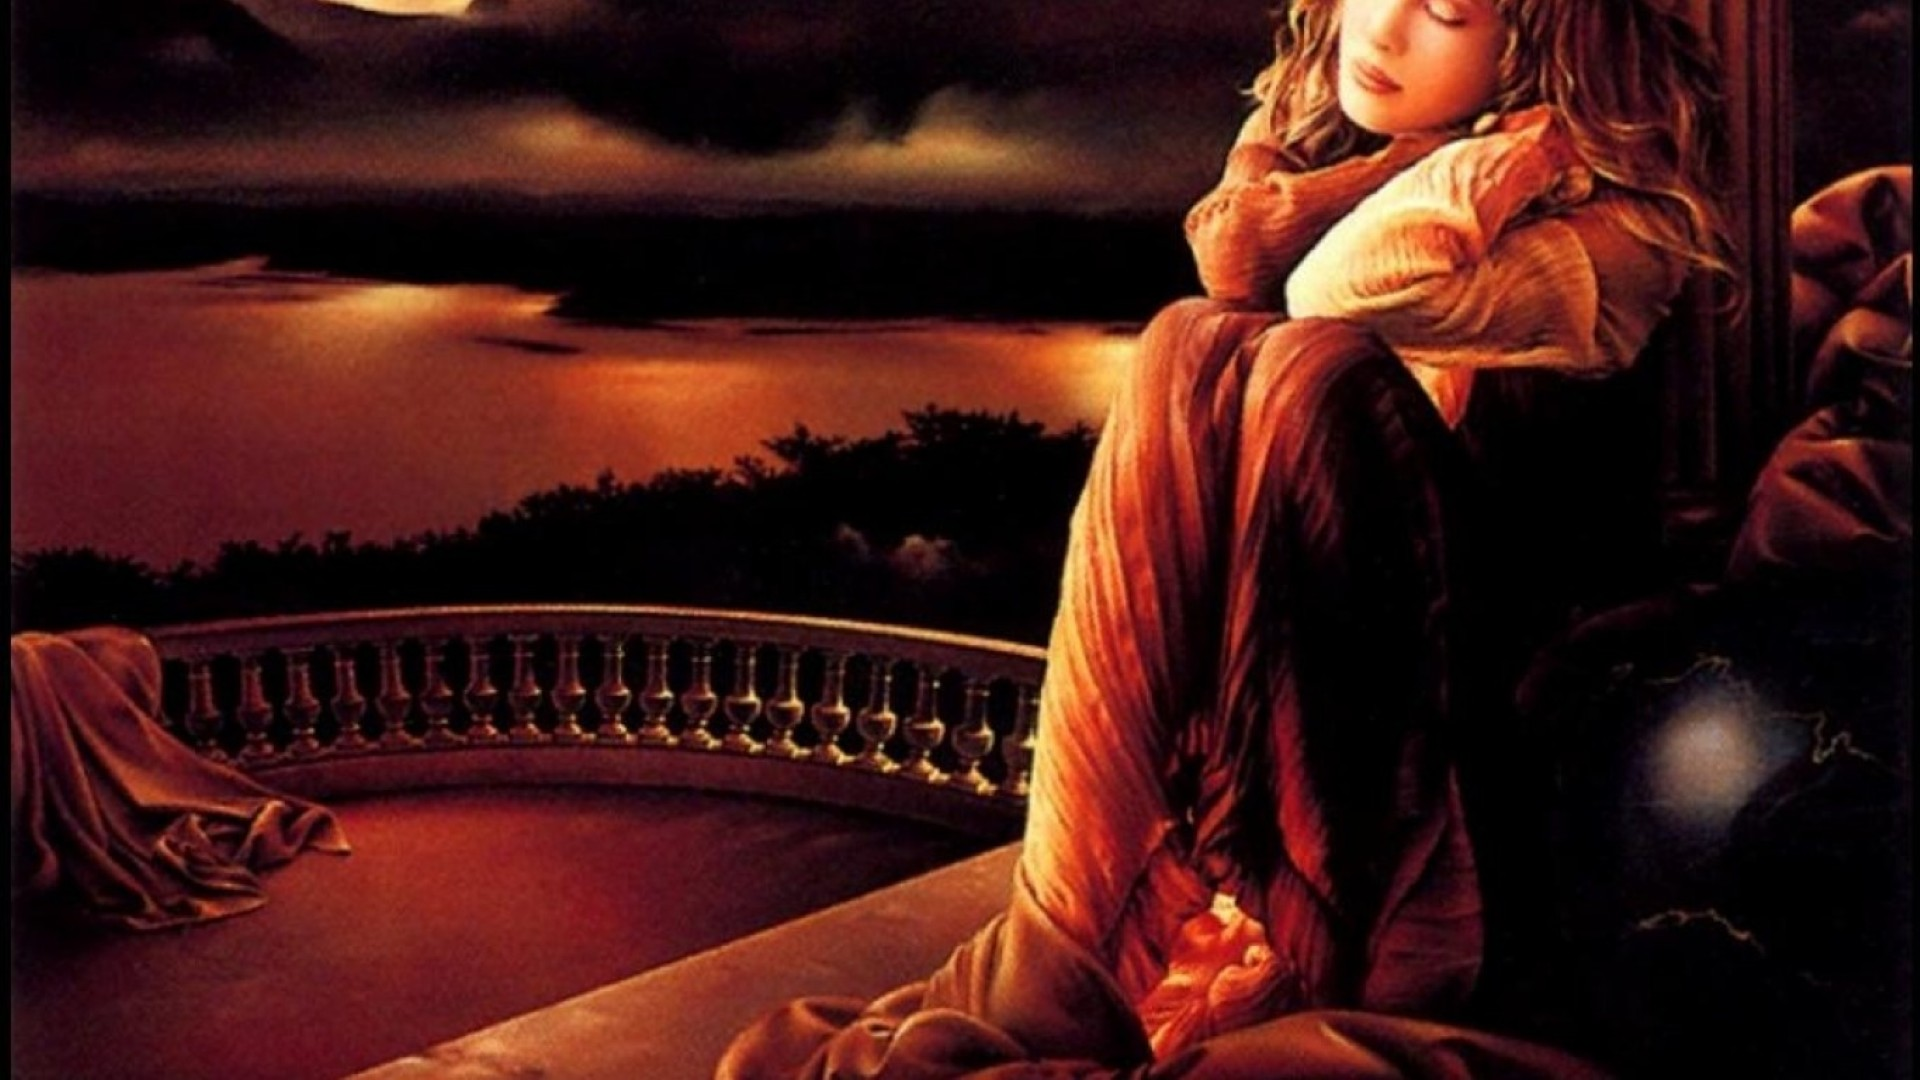 lonely girl images wallpapers 35 wallpapers � adorable